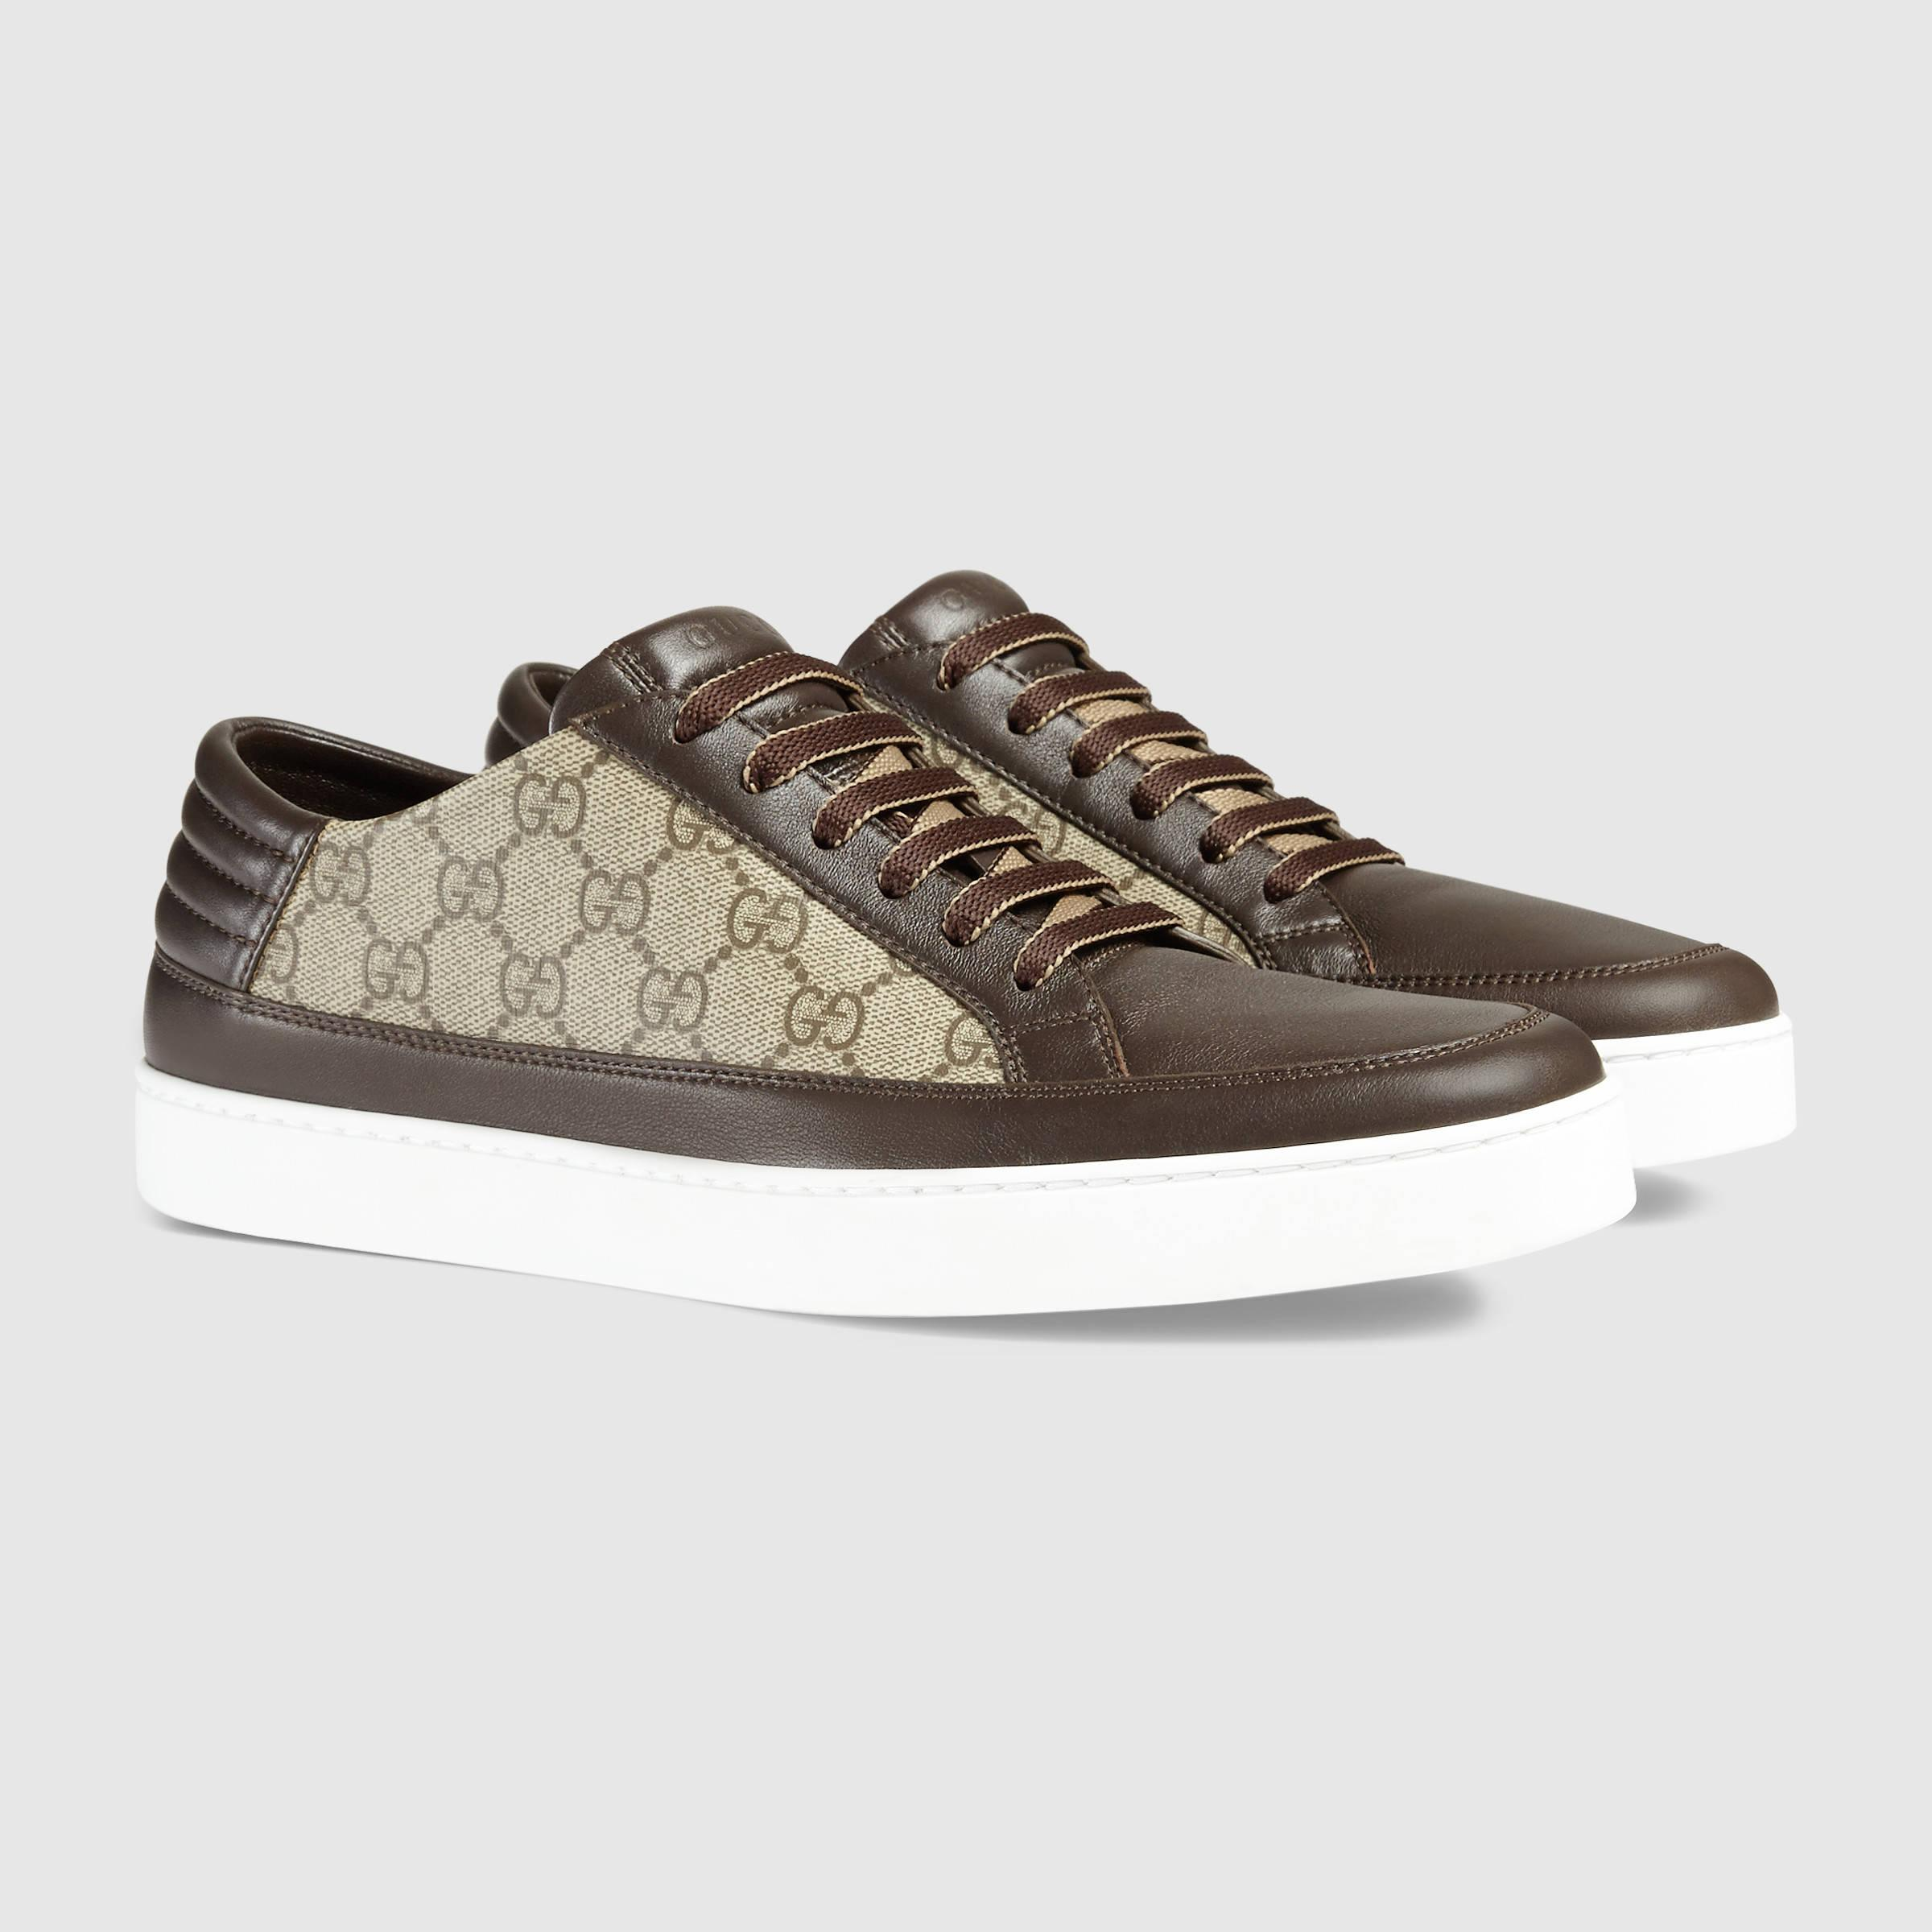 Gucci Gg Supreme Sneaker In Brown For Men Lyst